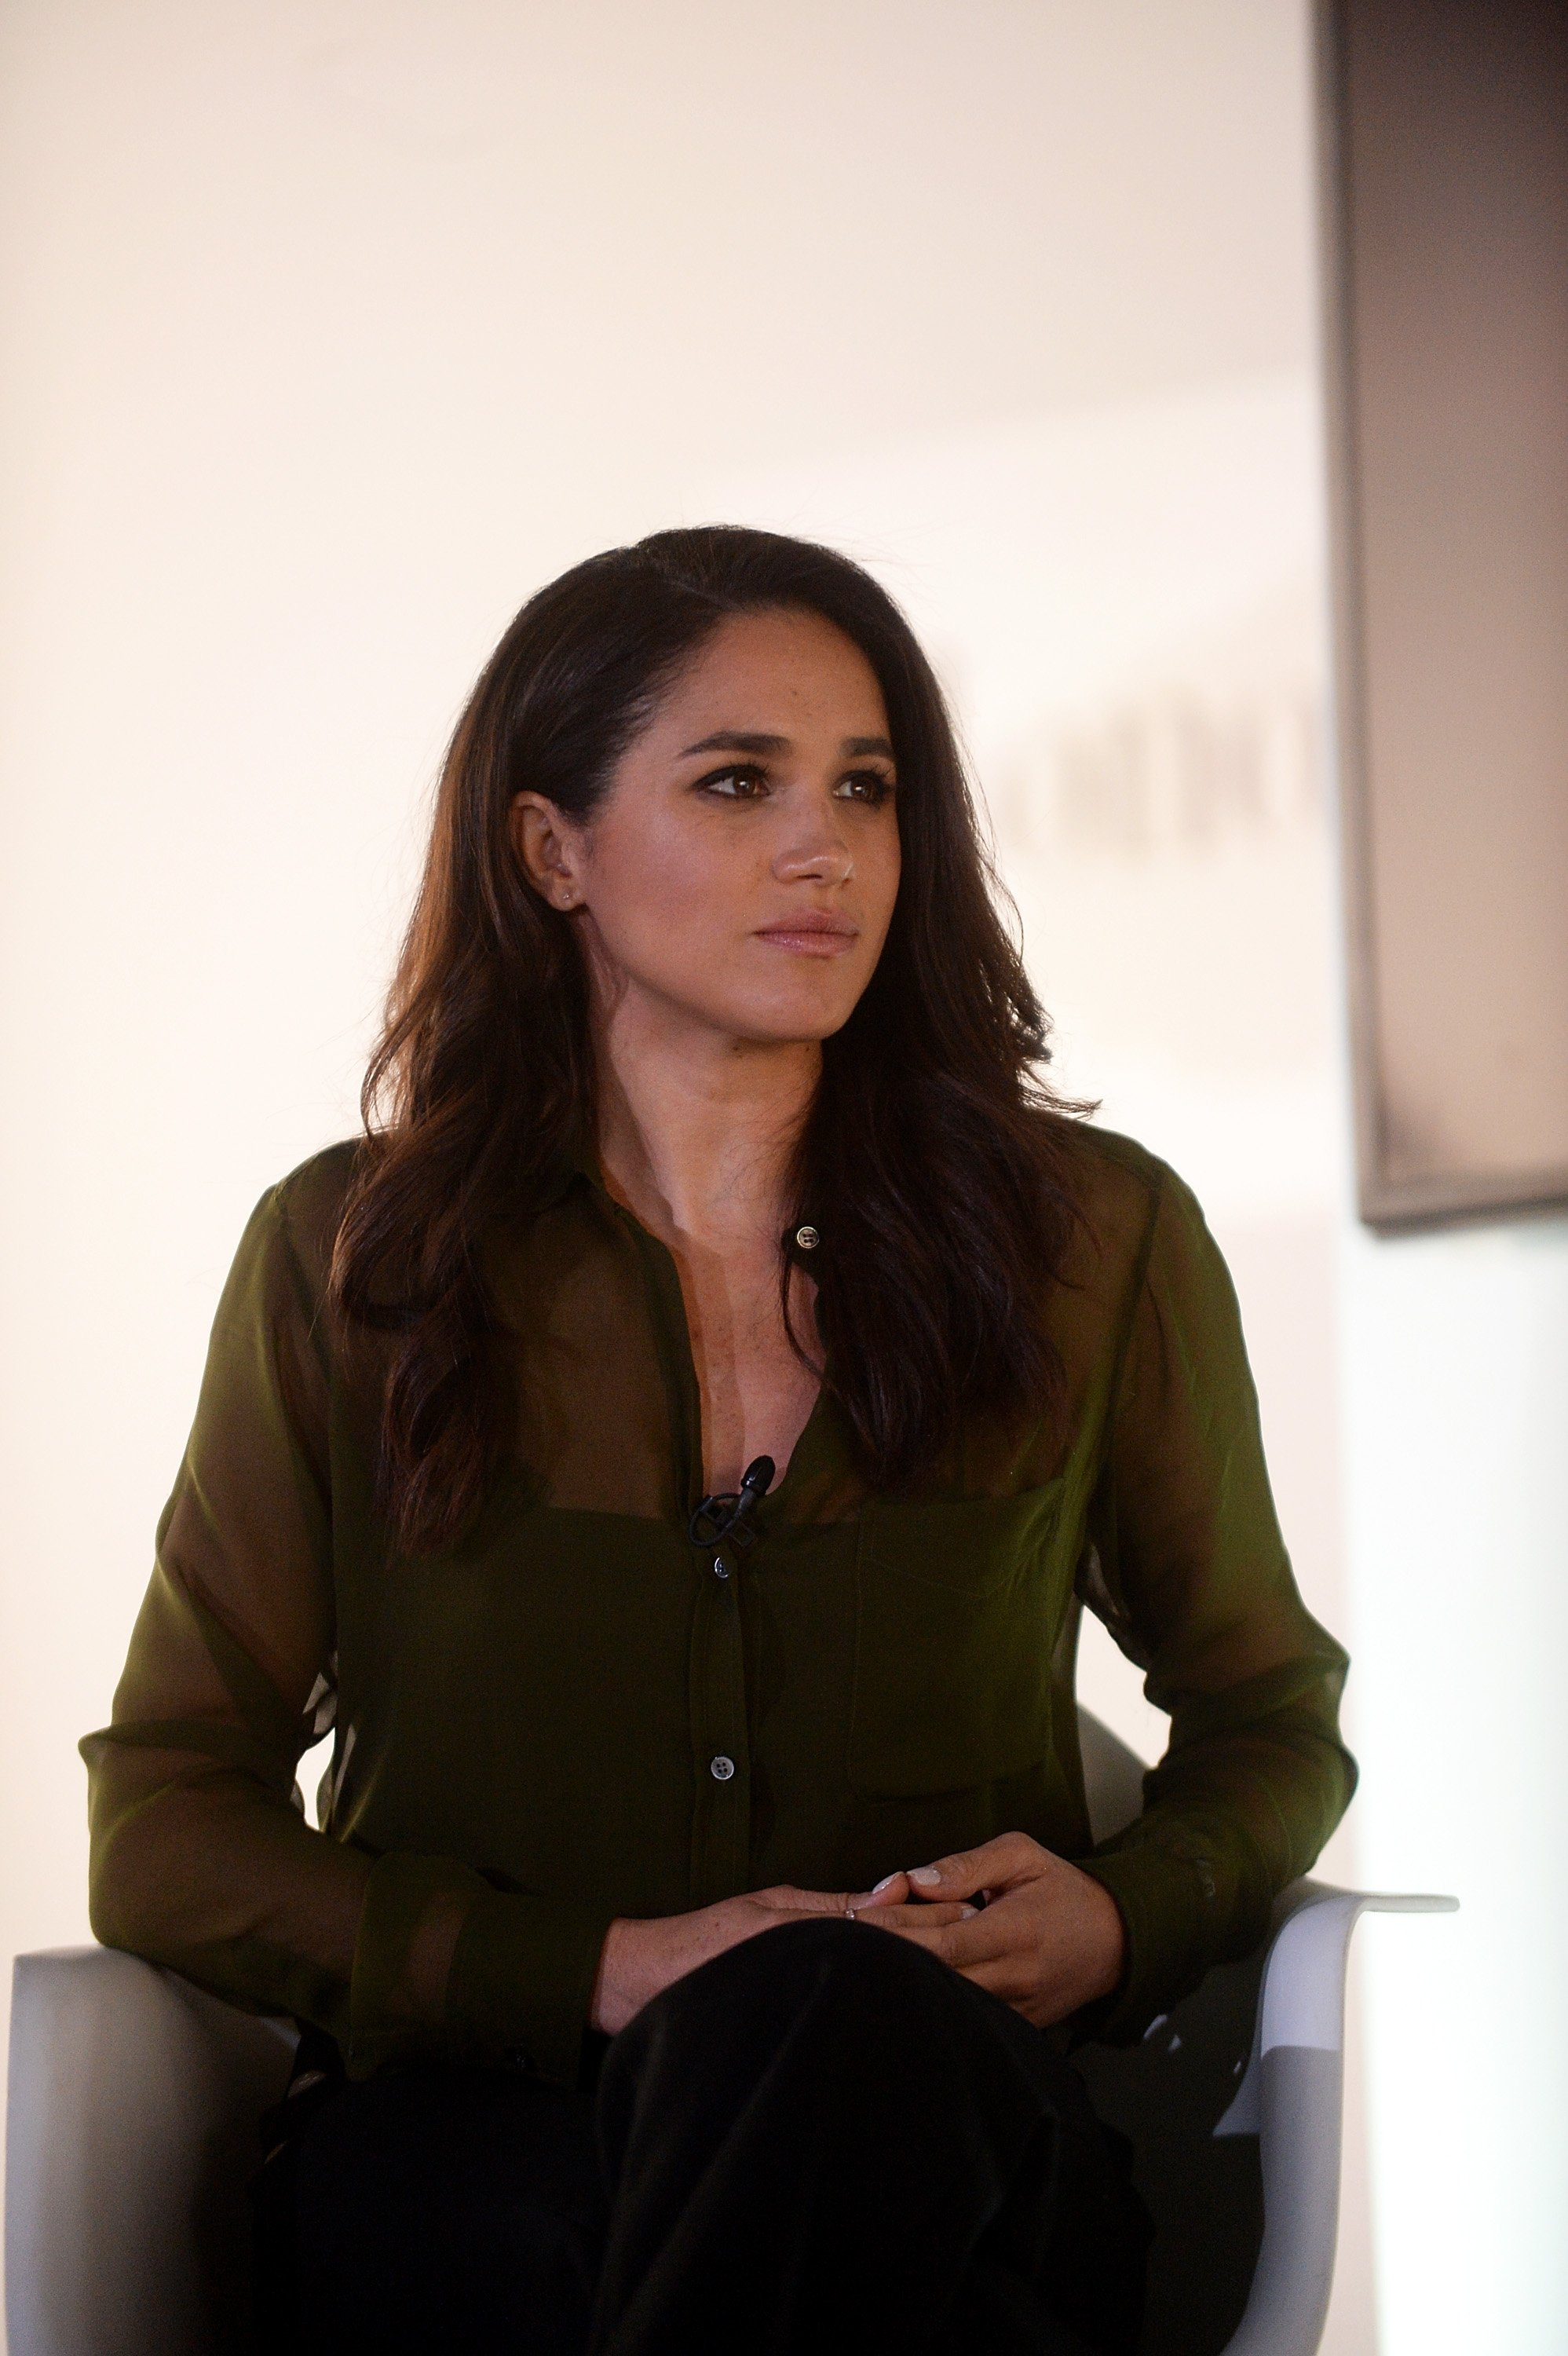 Meghan Markle attends REEBOK #HonorYourDays at Reebok Headquarters on April 28, 2016 in Massachusetts | Photo: Getty Images